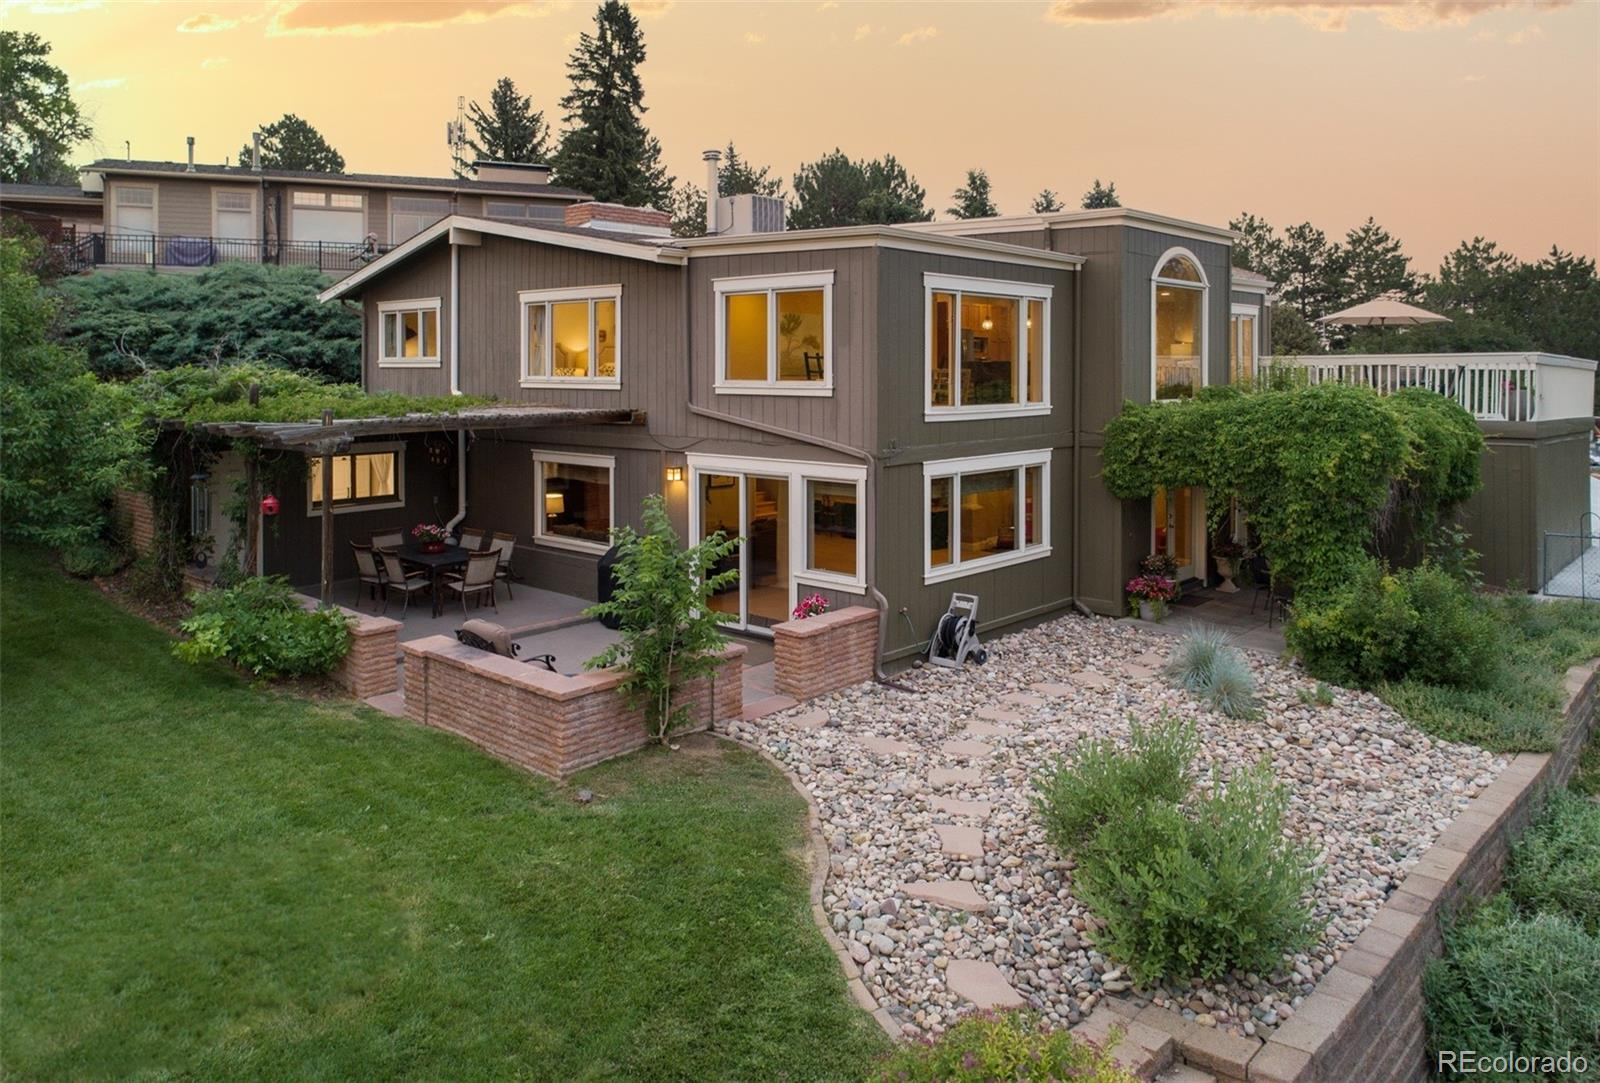 8426 W 68th Place, Arvada, CO 80004 - #: 4520616